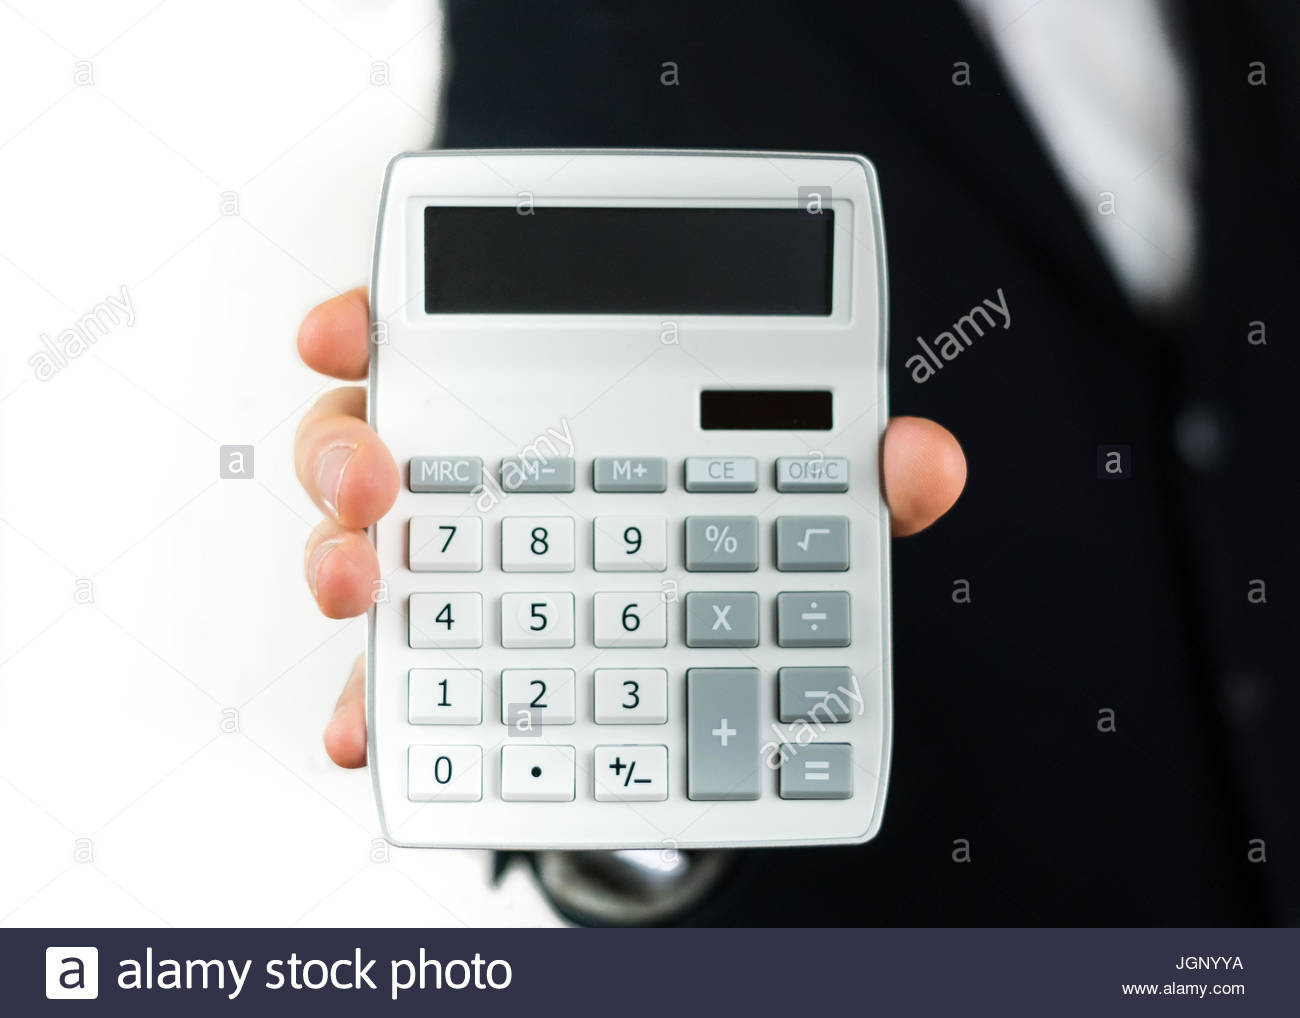 Homme d'affaires à l'aide d'une calculatrice Photo Stock